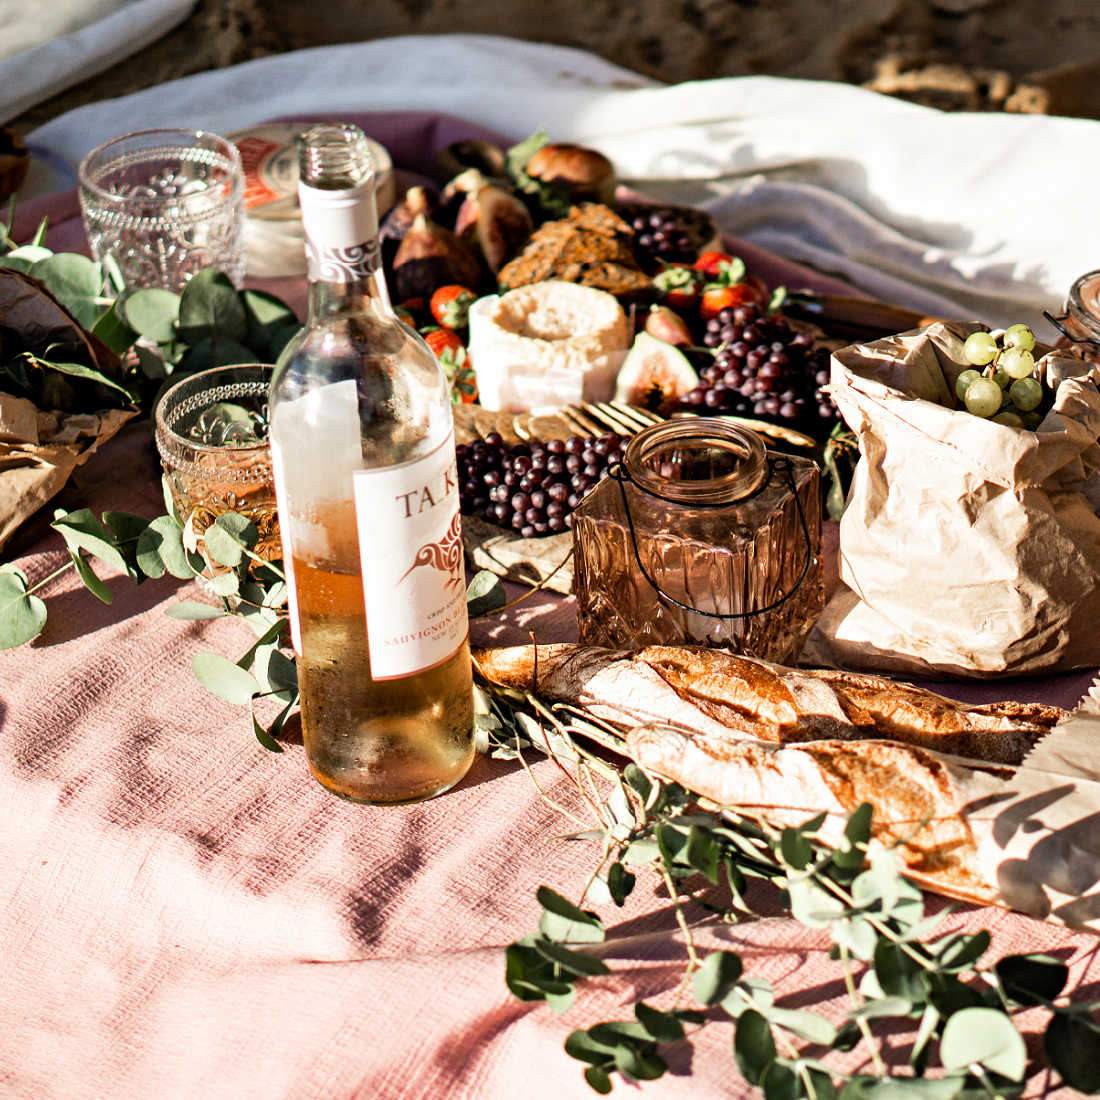 Summer-picnic-cheese-low-res83QiBziMN3M3H